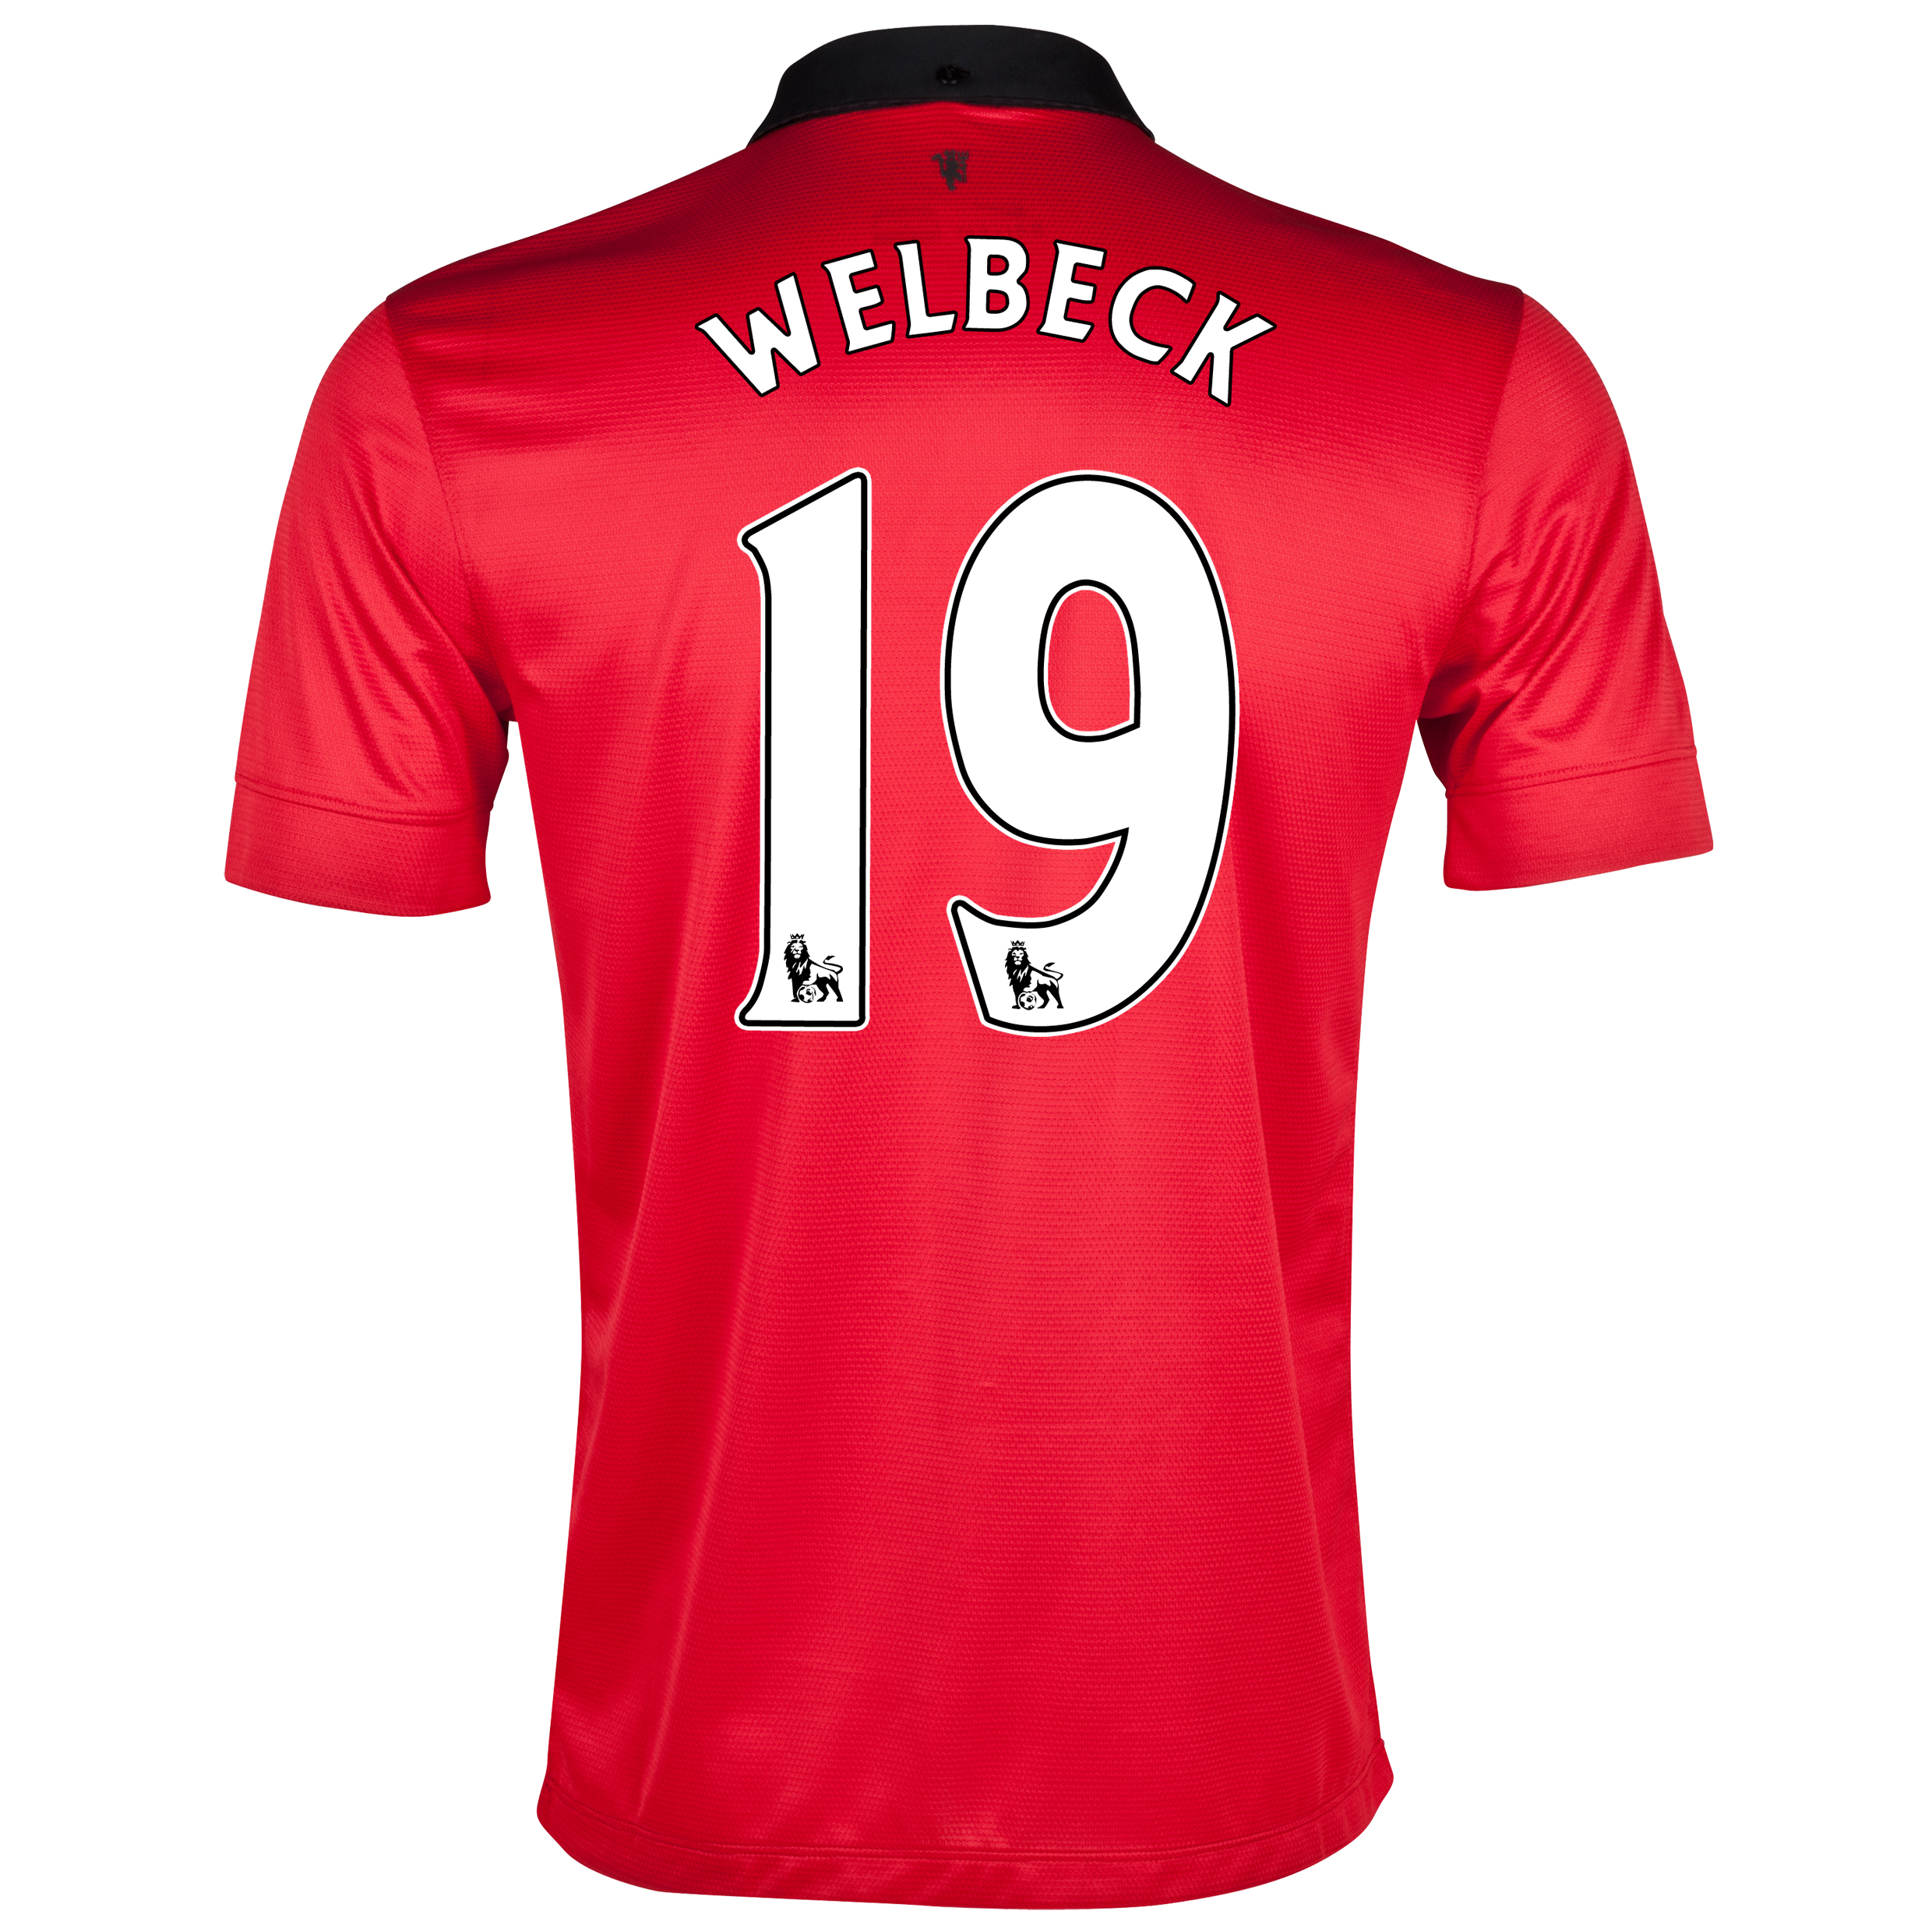 Manchester United Home Shirt 2013/14 with Welbeck 19 printing